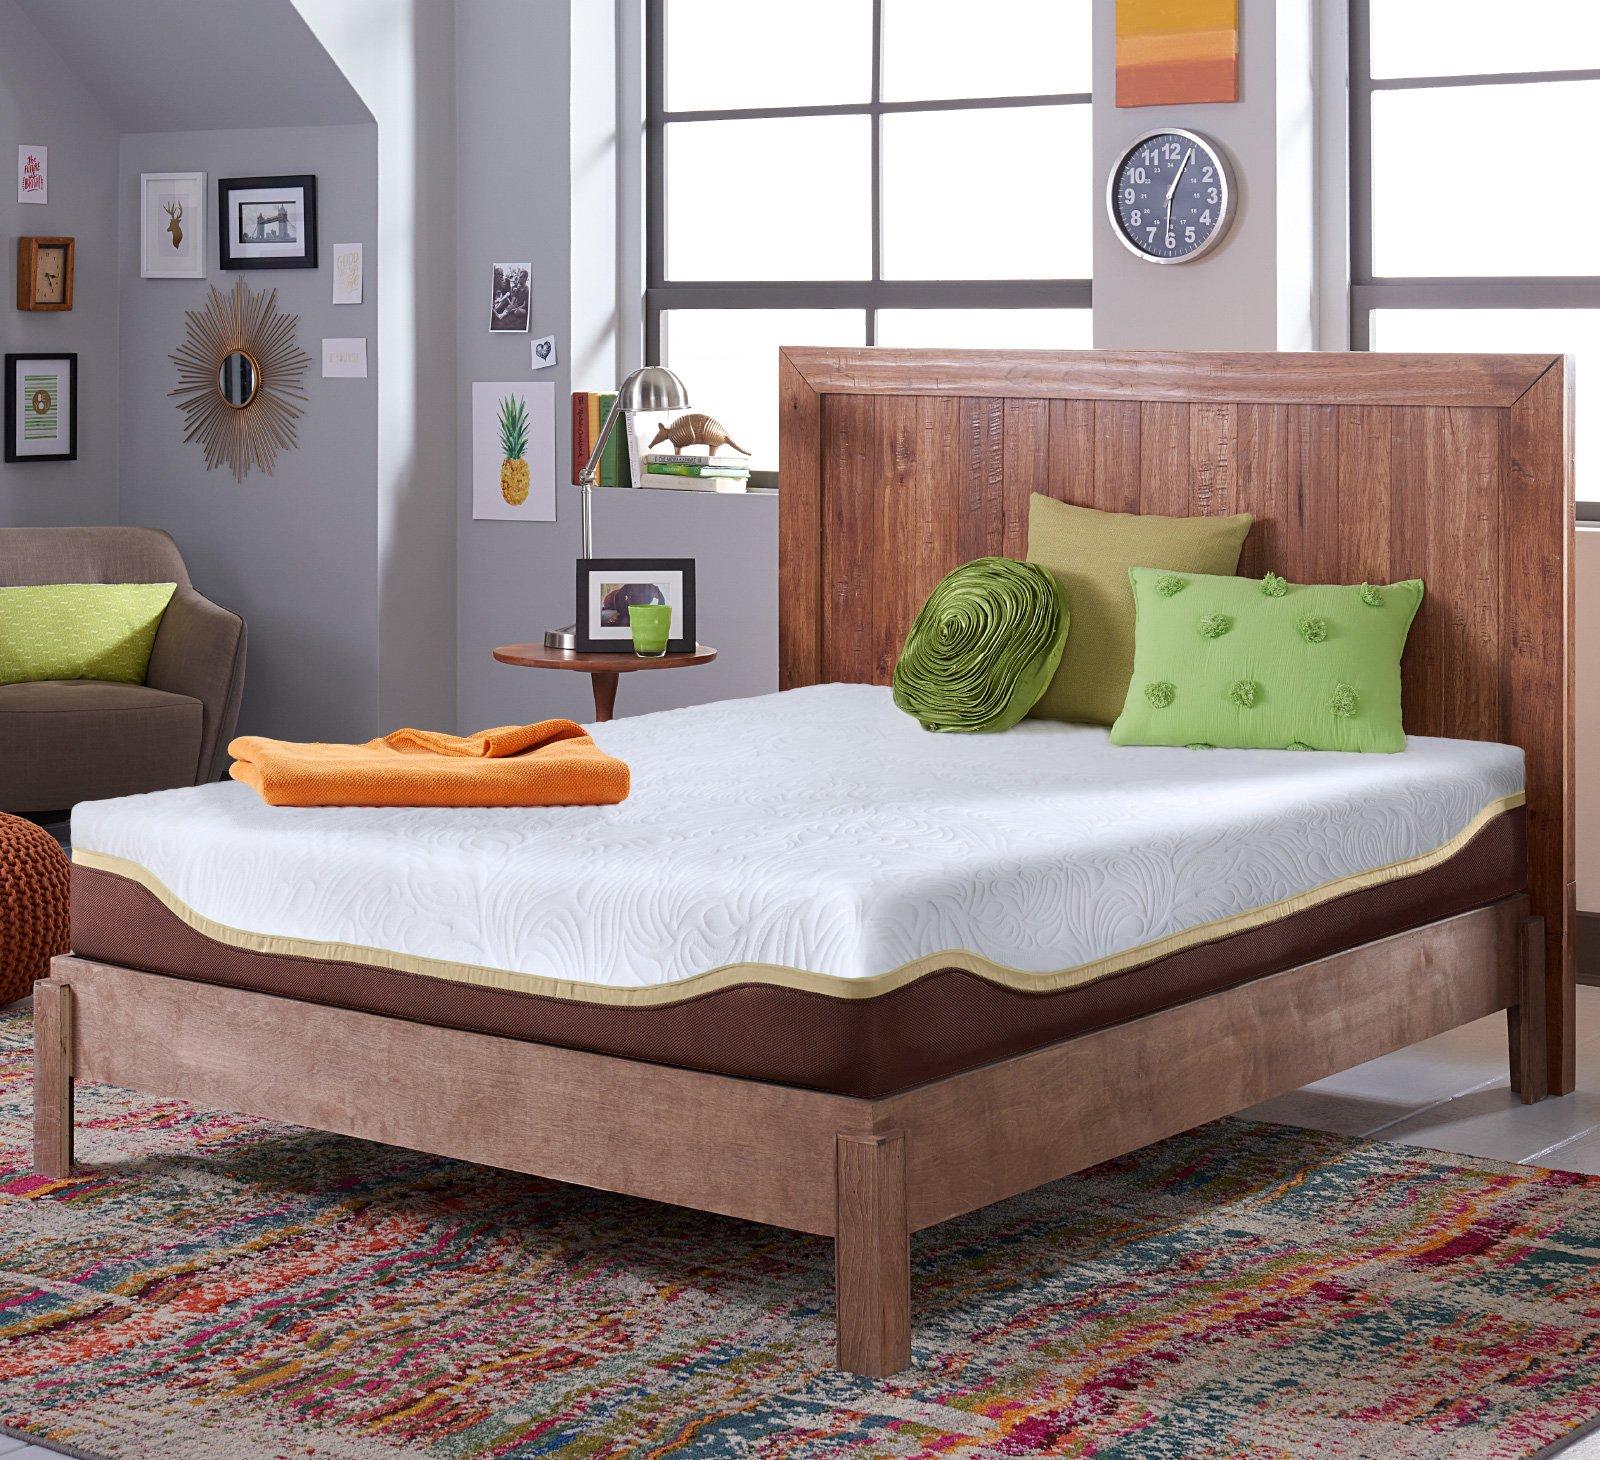 Live and Sleep Elite - Full XL Cooling Gel Memory Foam Mattress in a Box - Bonus Memory Foam Pillow - Certipur Certified Bed in a Box - Full Extra Long Size by Live and Sleep